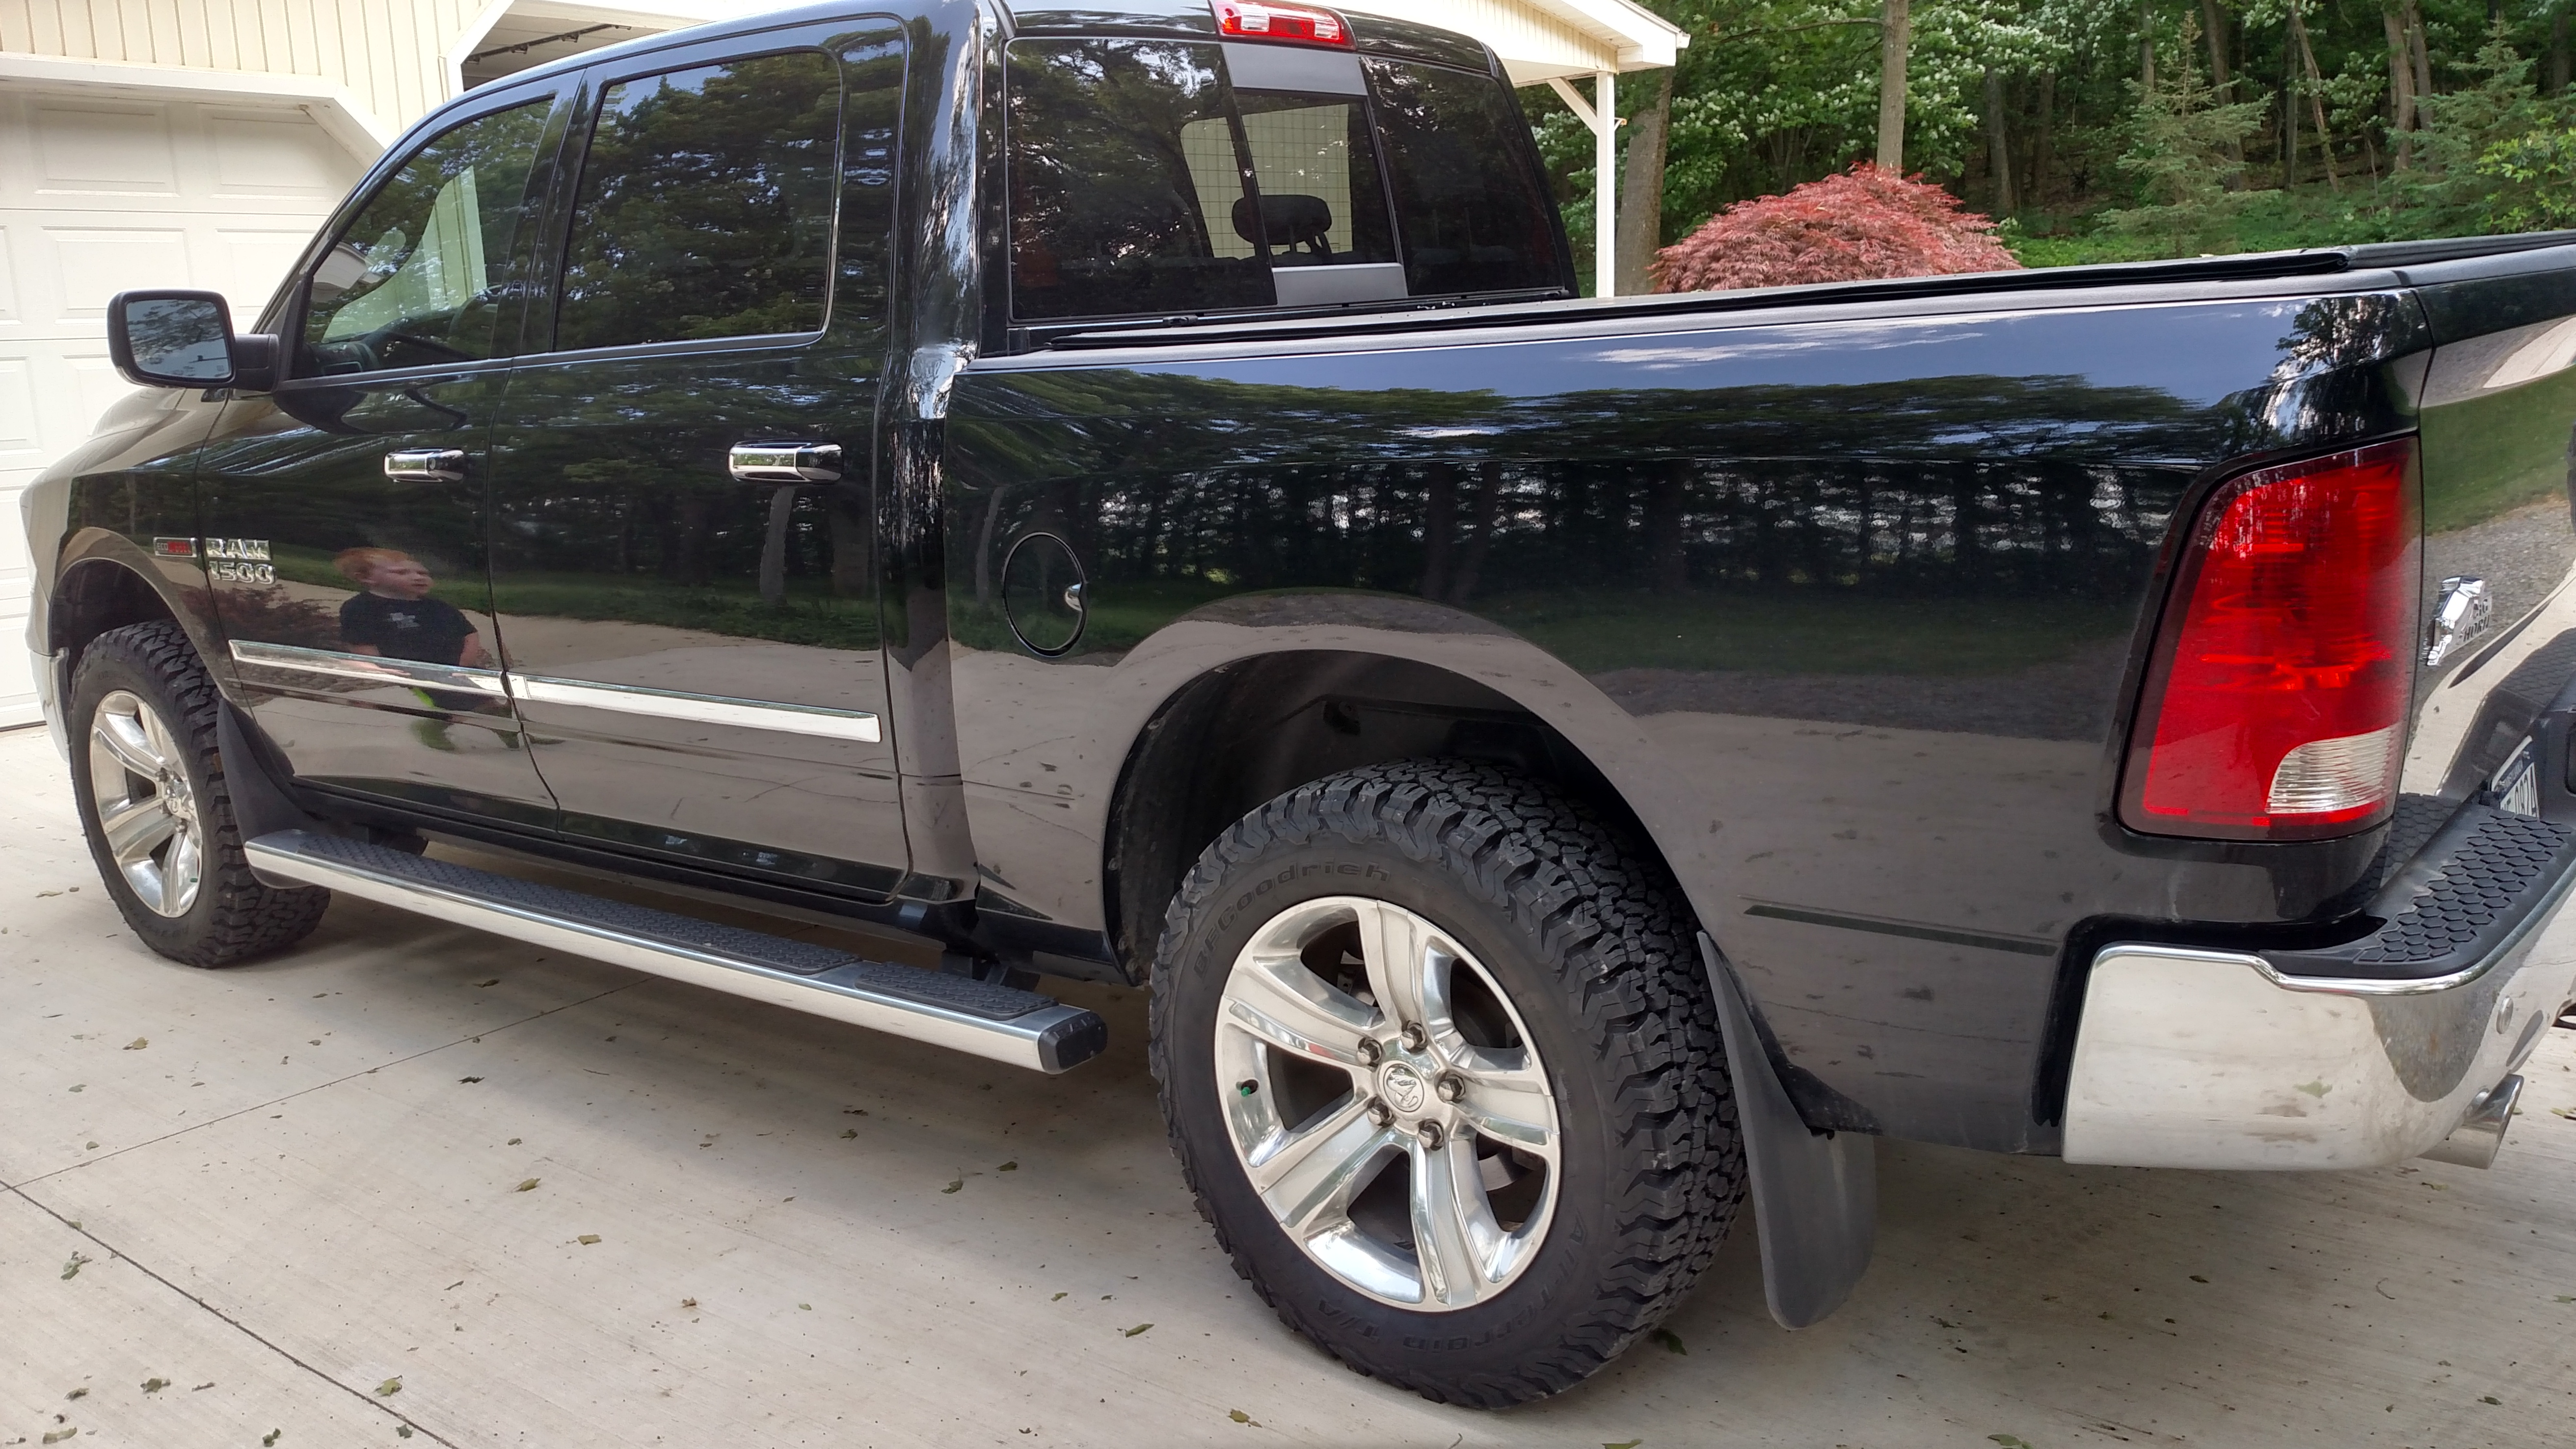 Bfg Truck Tires >> New 275/60r20 Bf Goodrich A/T Ko2 tires installed